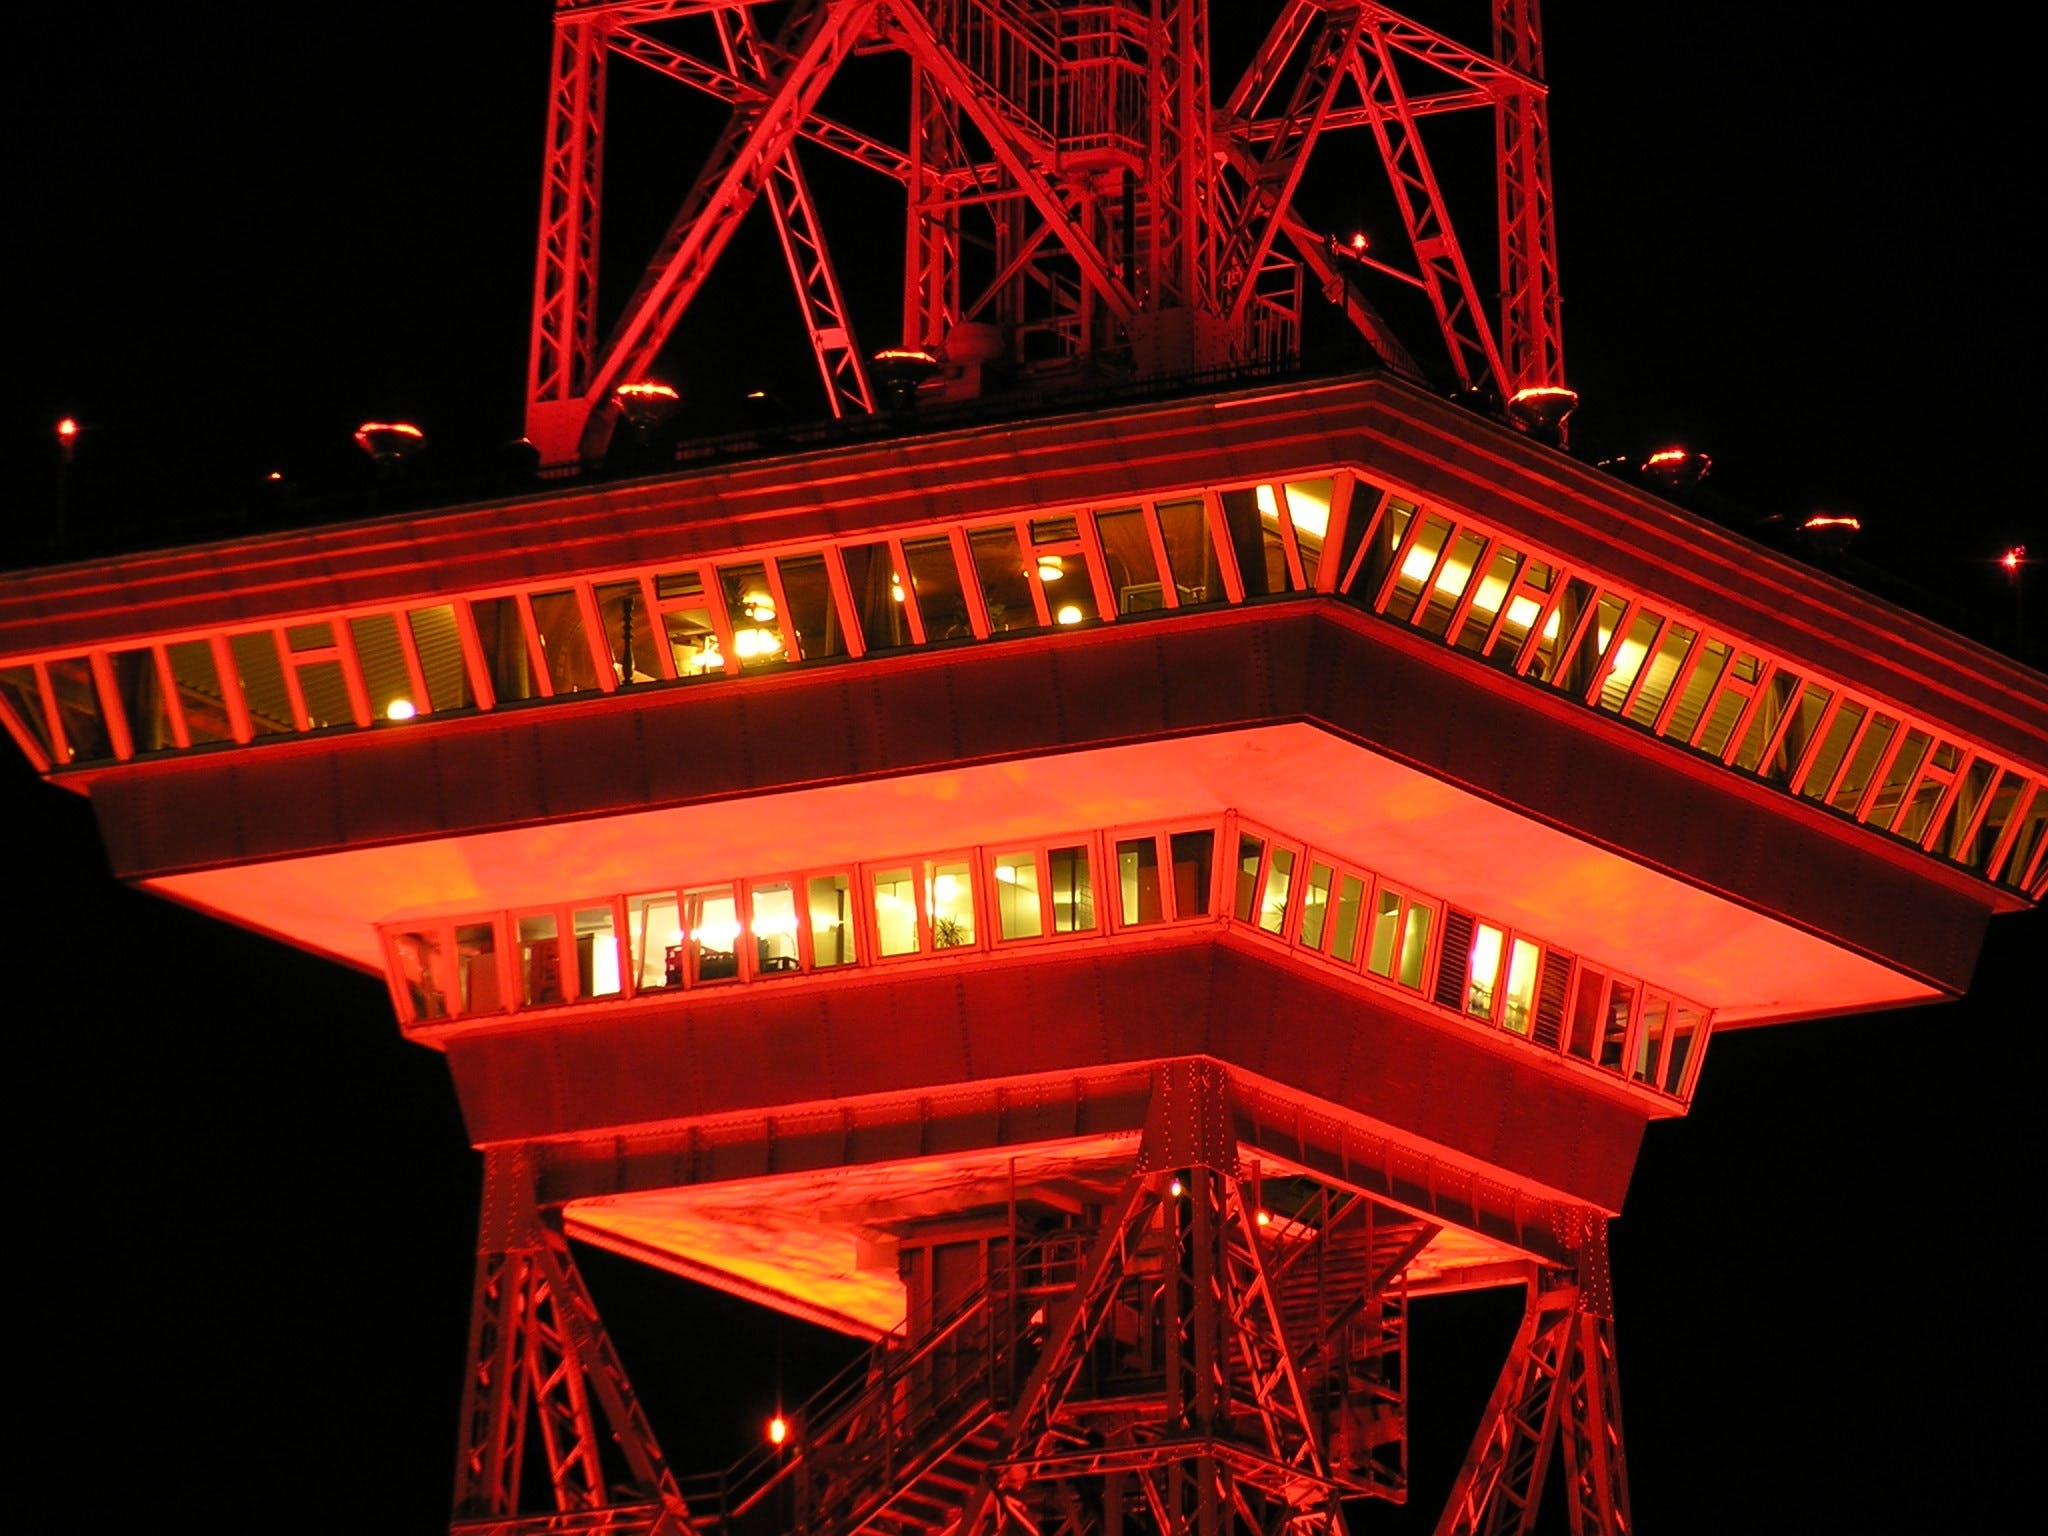 Red Metal Tower at Nighttime